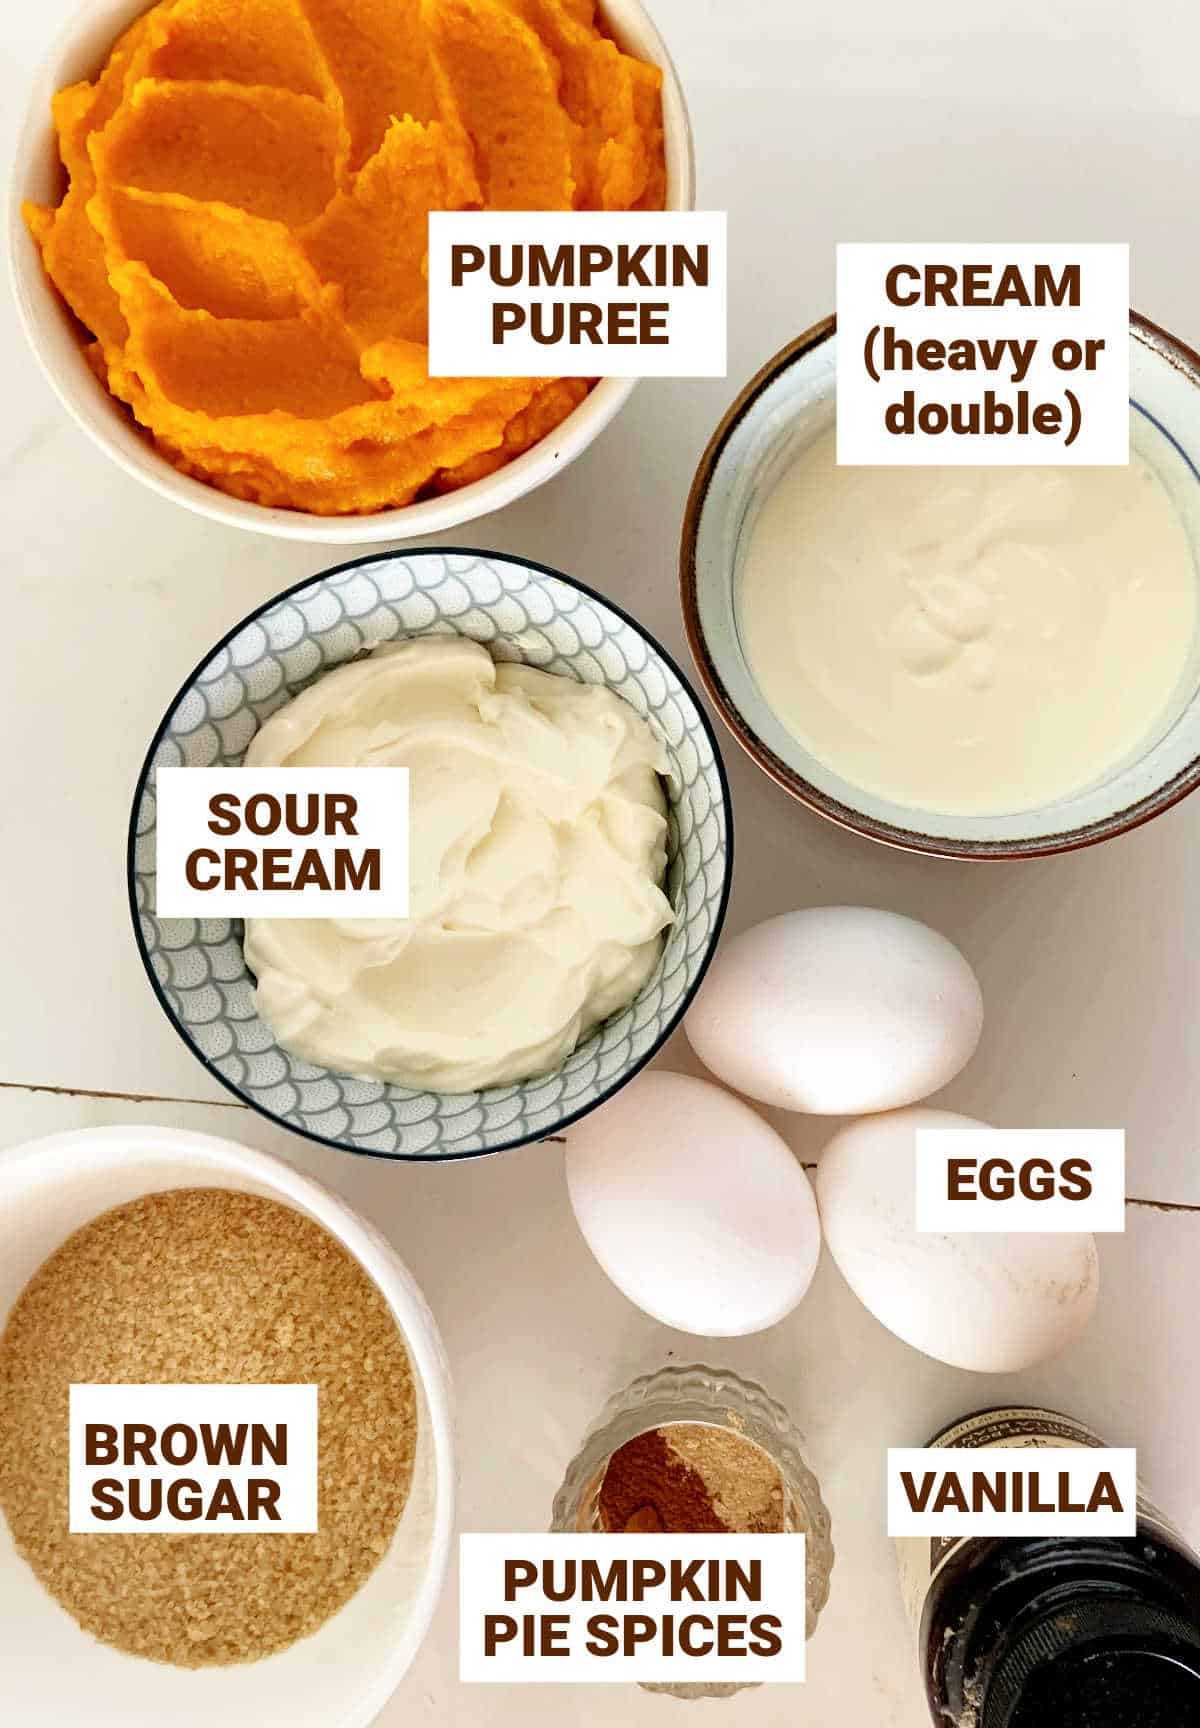 White surface with bowls containing ingredients for pumpkin pie with sour cream and brown sugar